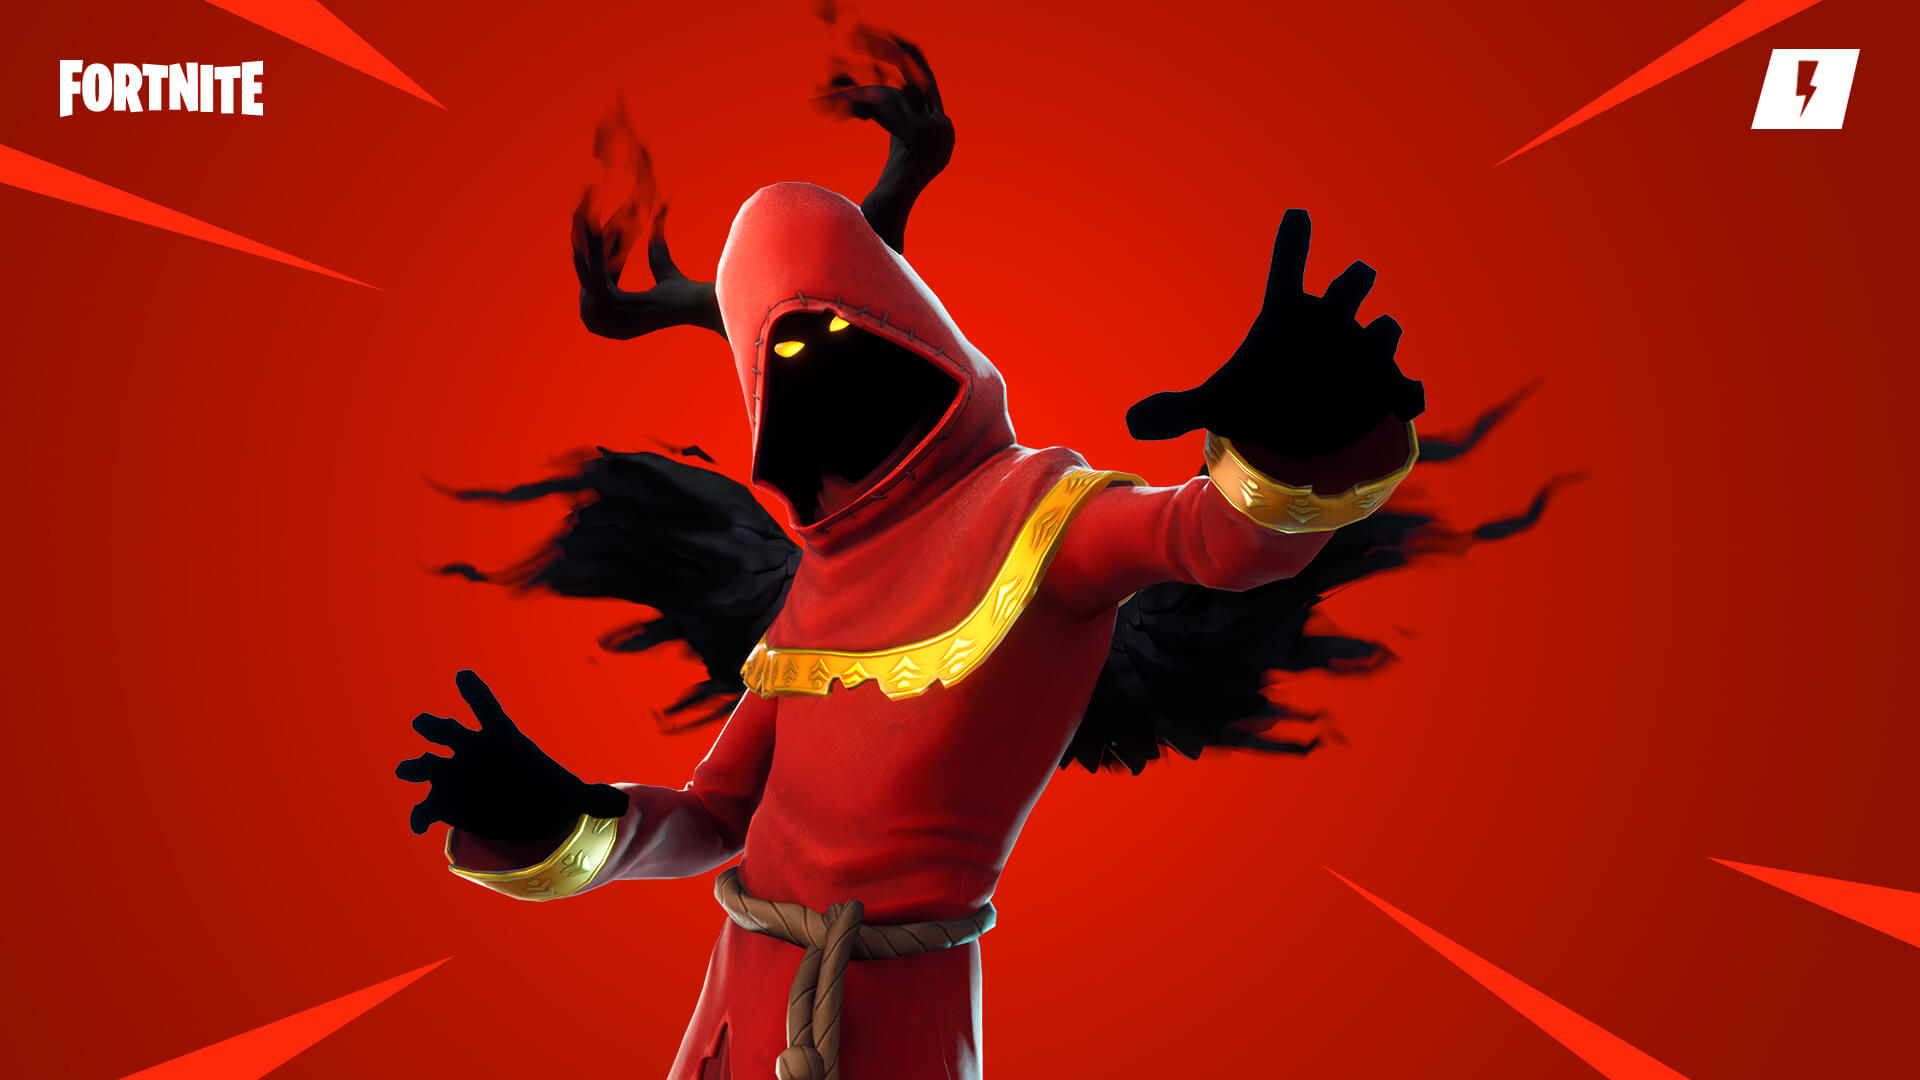 Fortnite Save the World Cloaked Shadow Hero